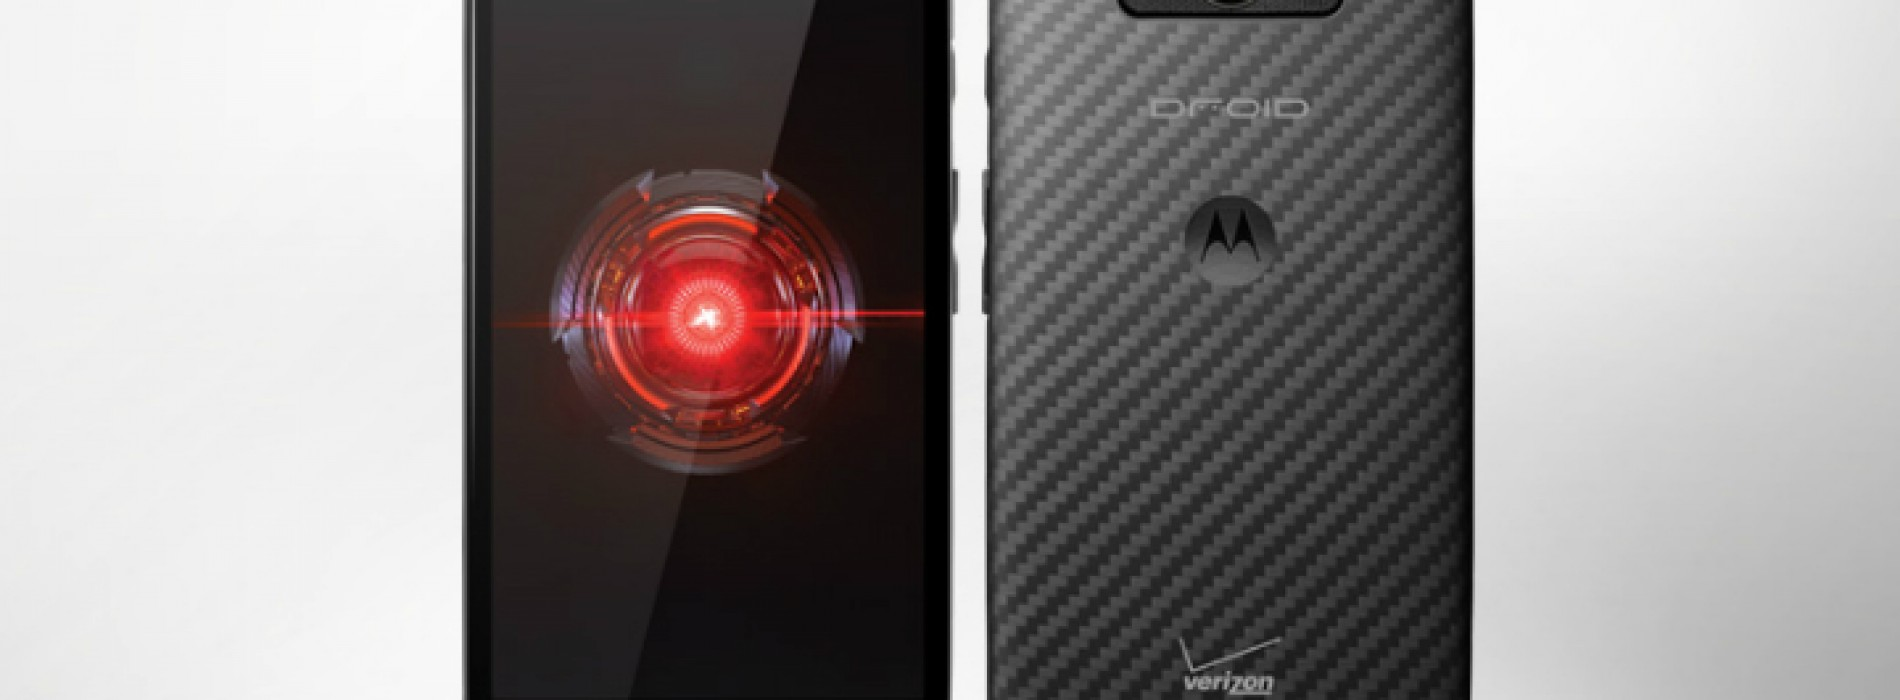 Deals & Discounts: Motorola Droid Maxx is $199 through Amazon for new and existing subscribers